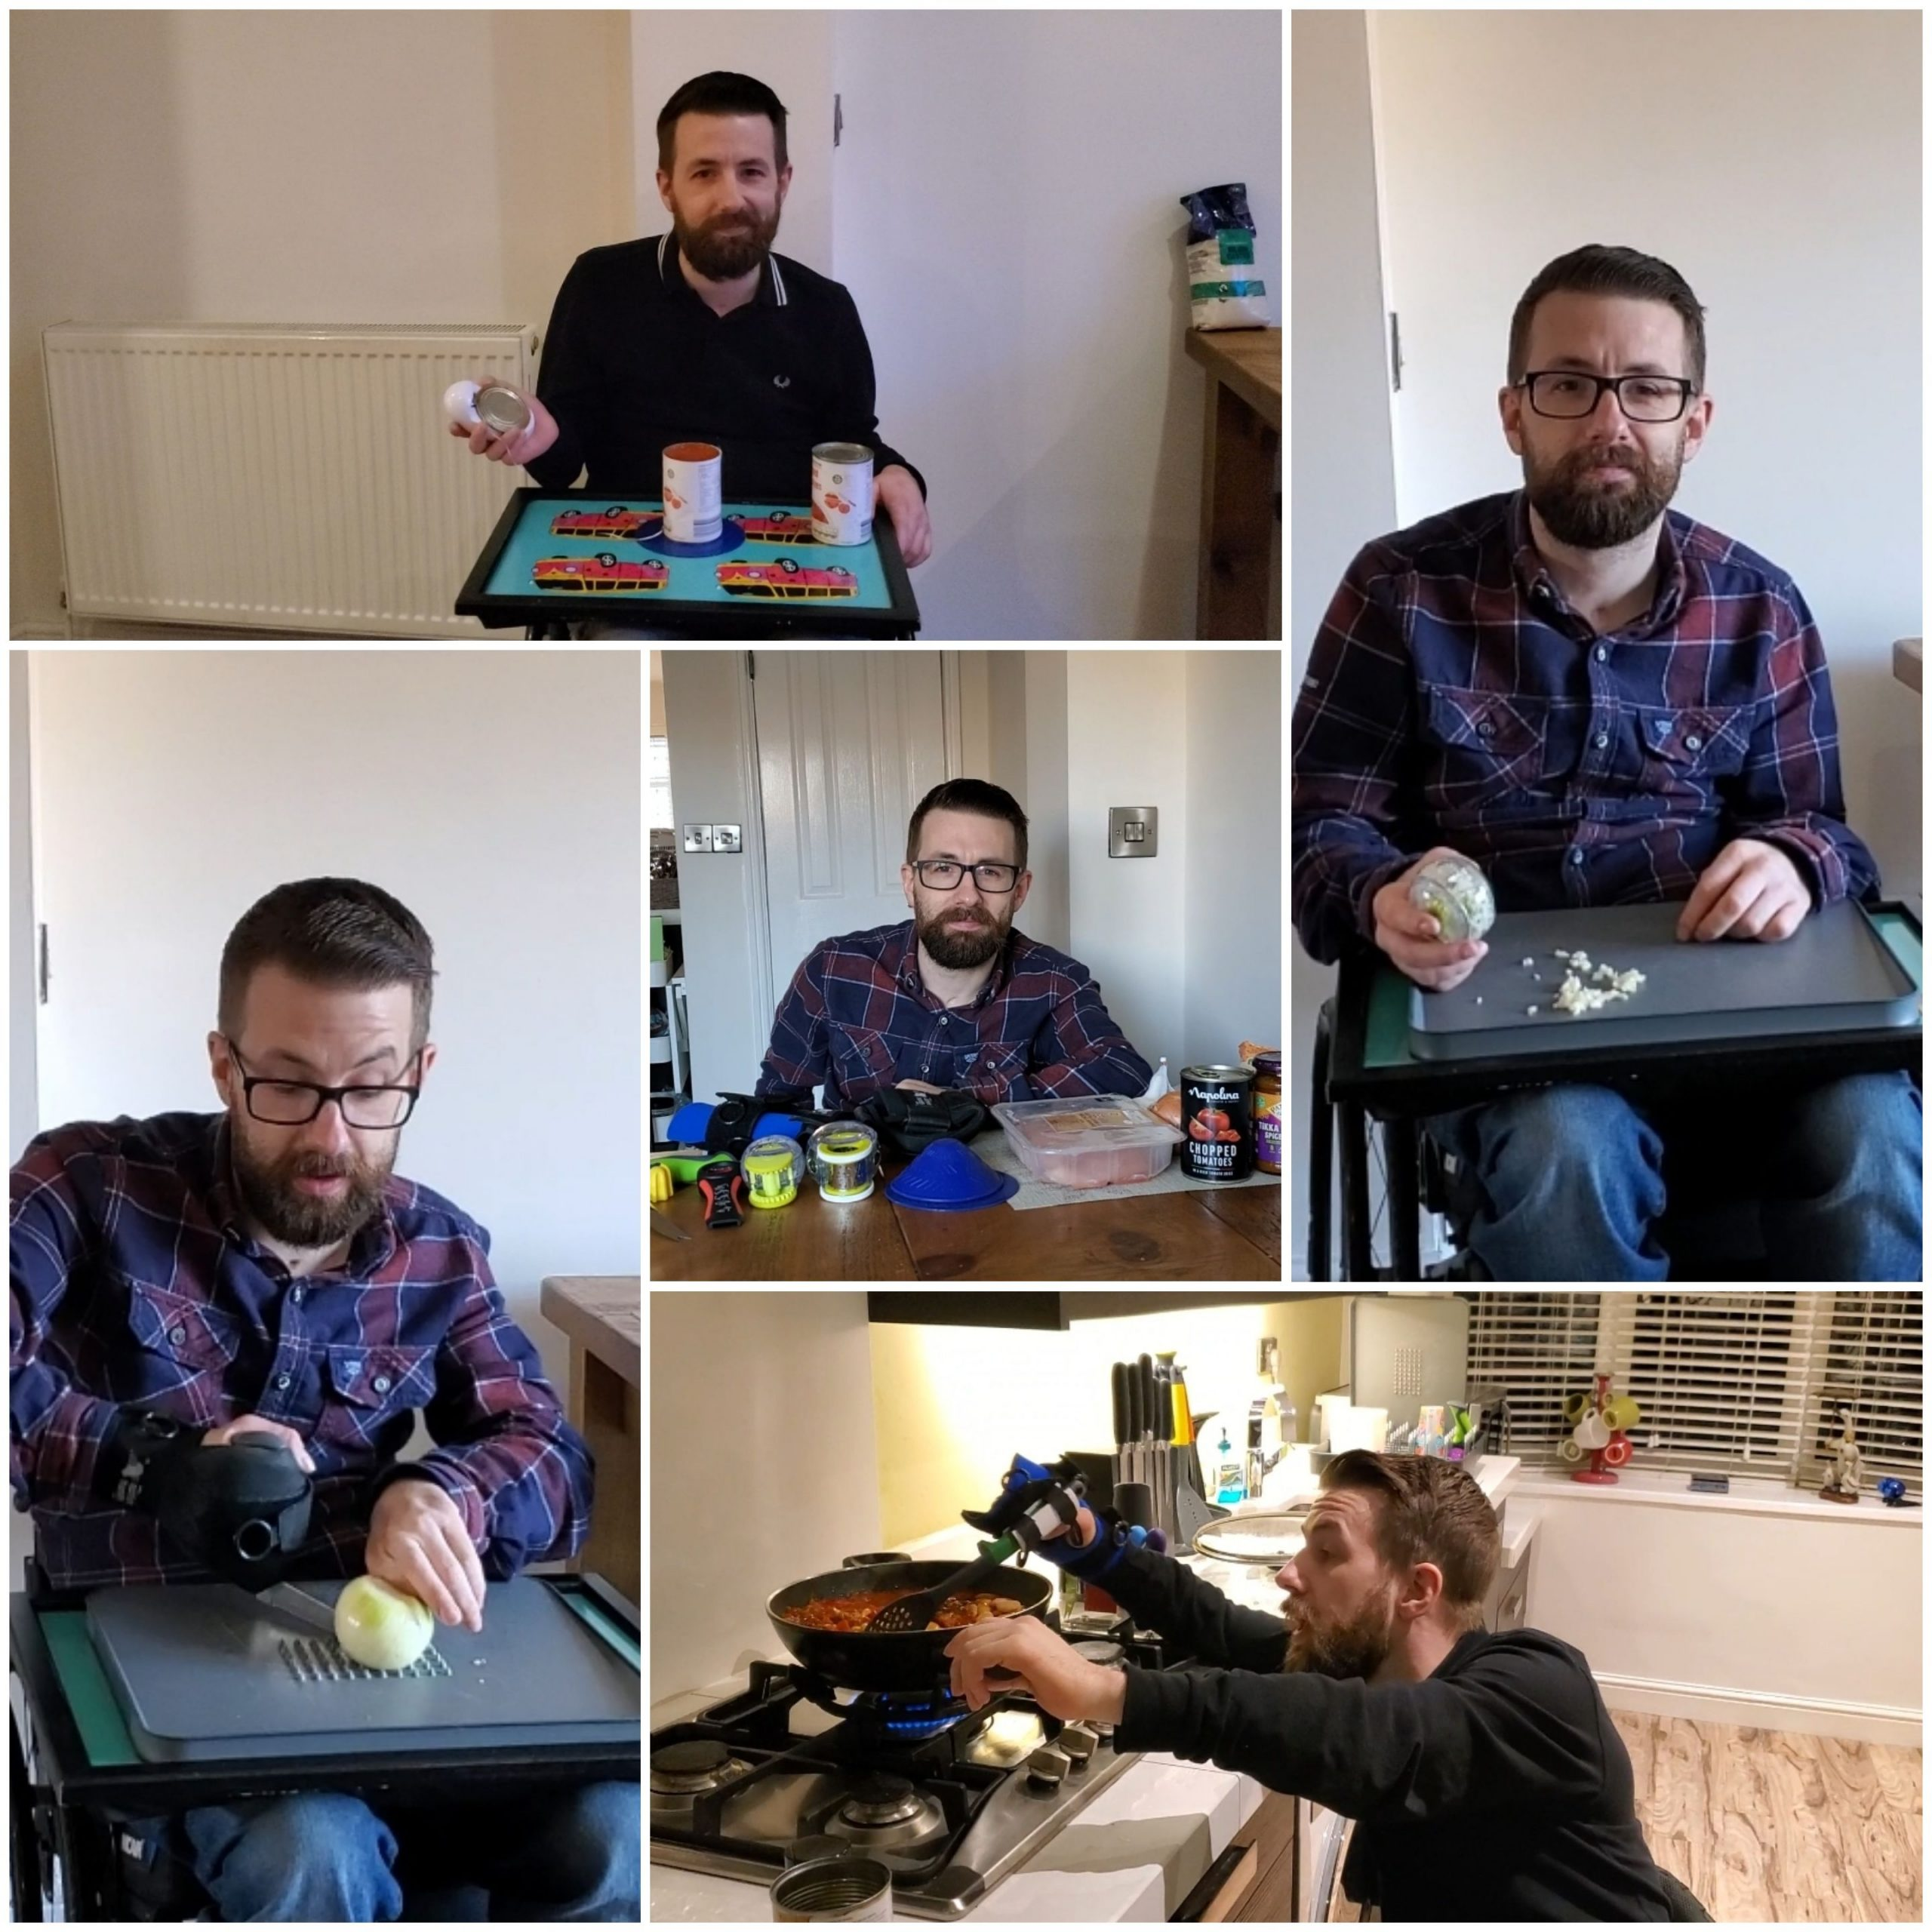 Guest Post: Quad In The Kitchen by Gareth Herridge